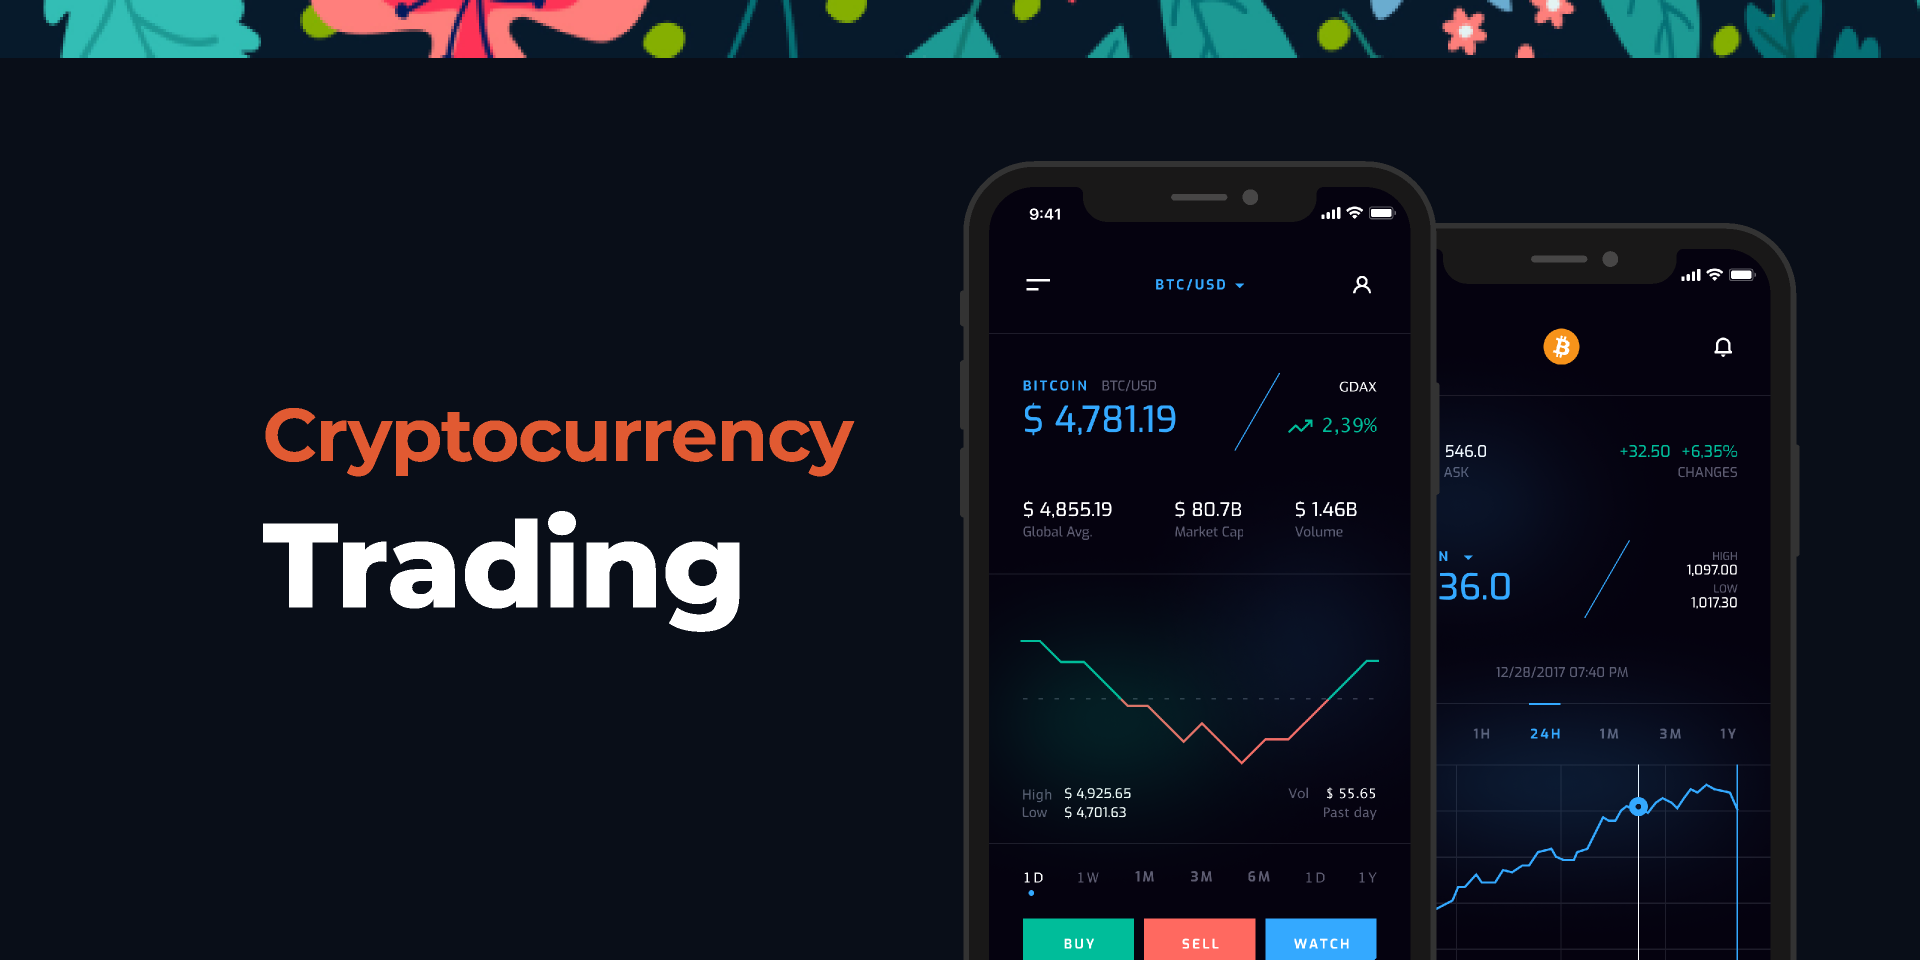 Cryptocurrency Trading - Concept